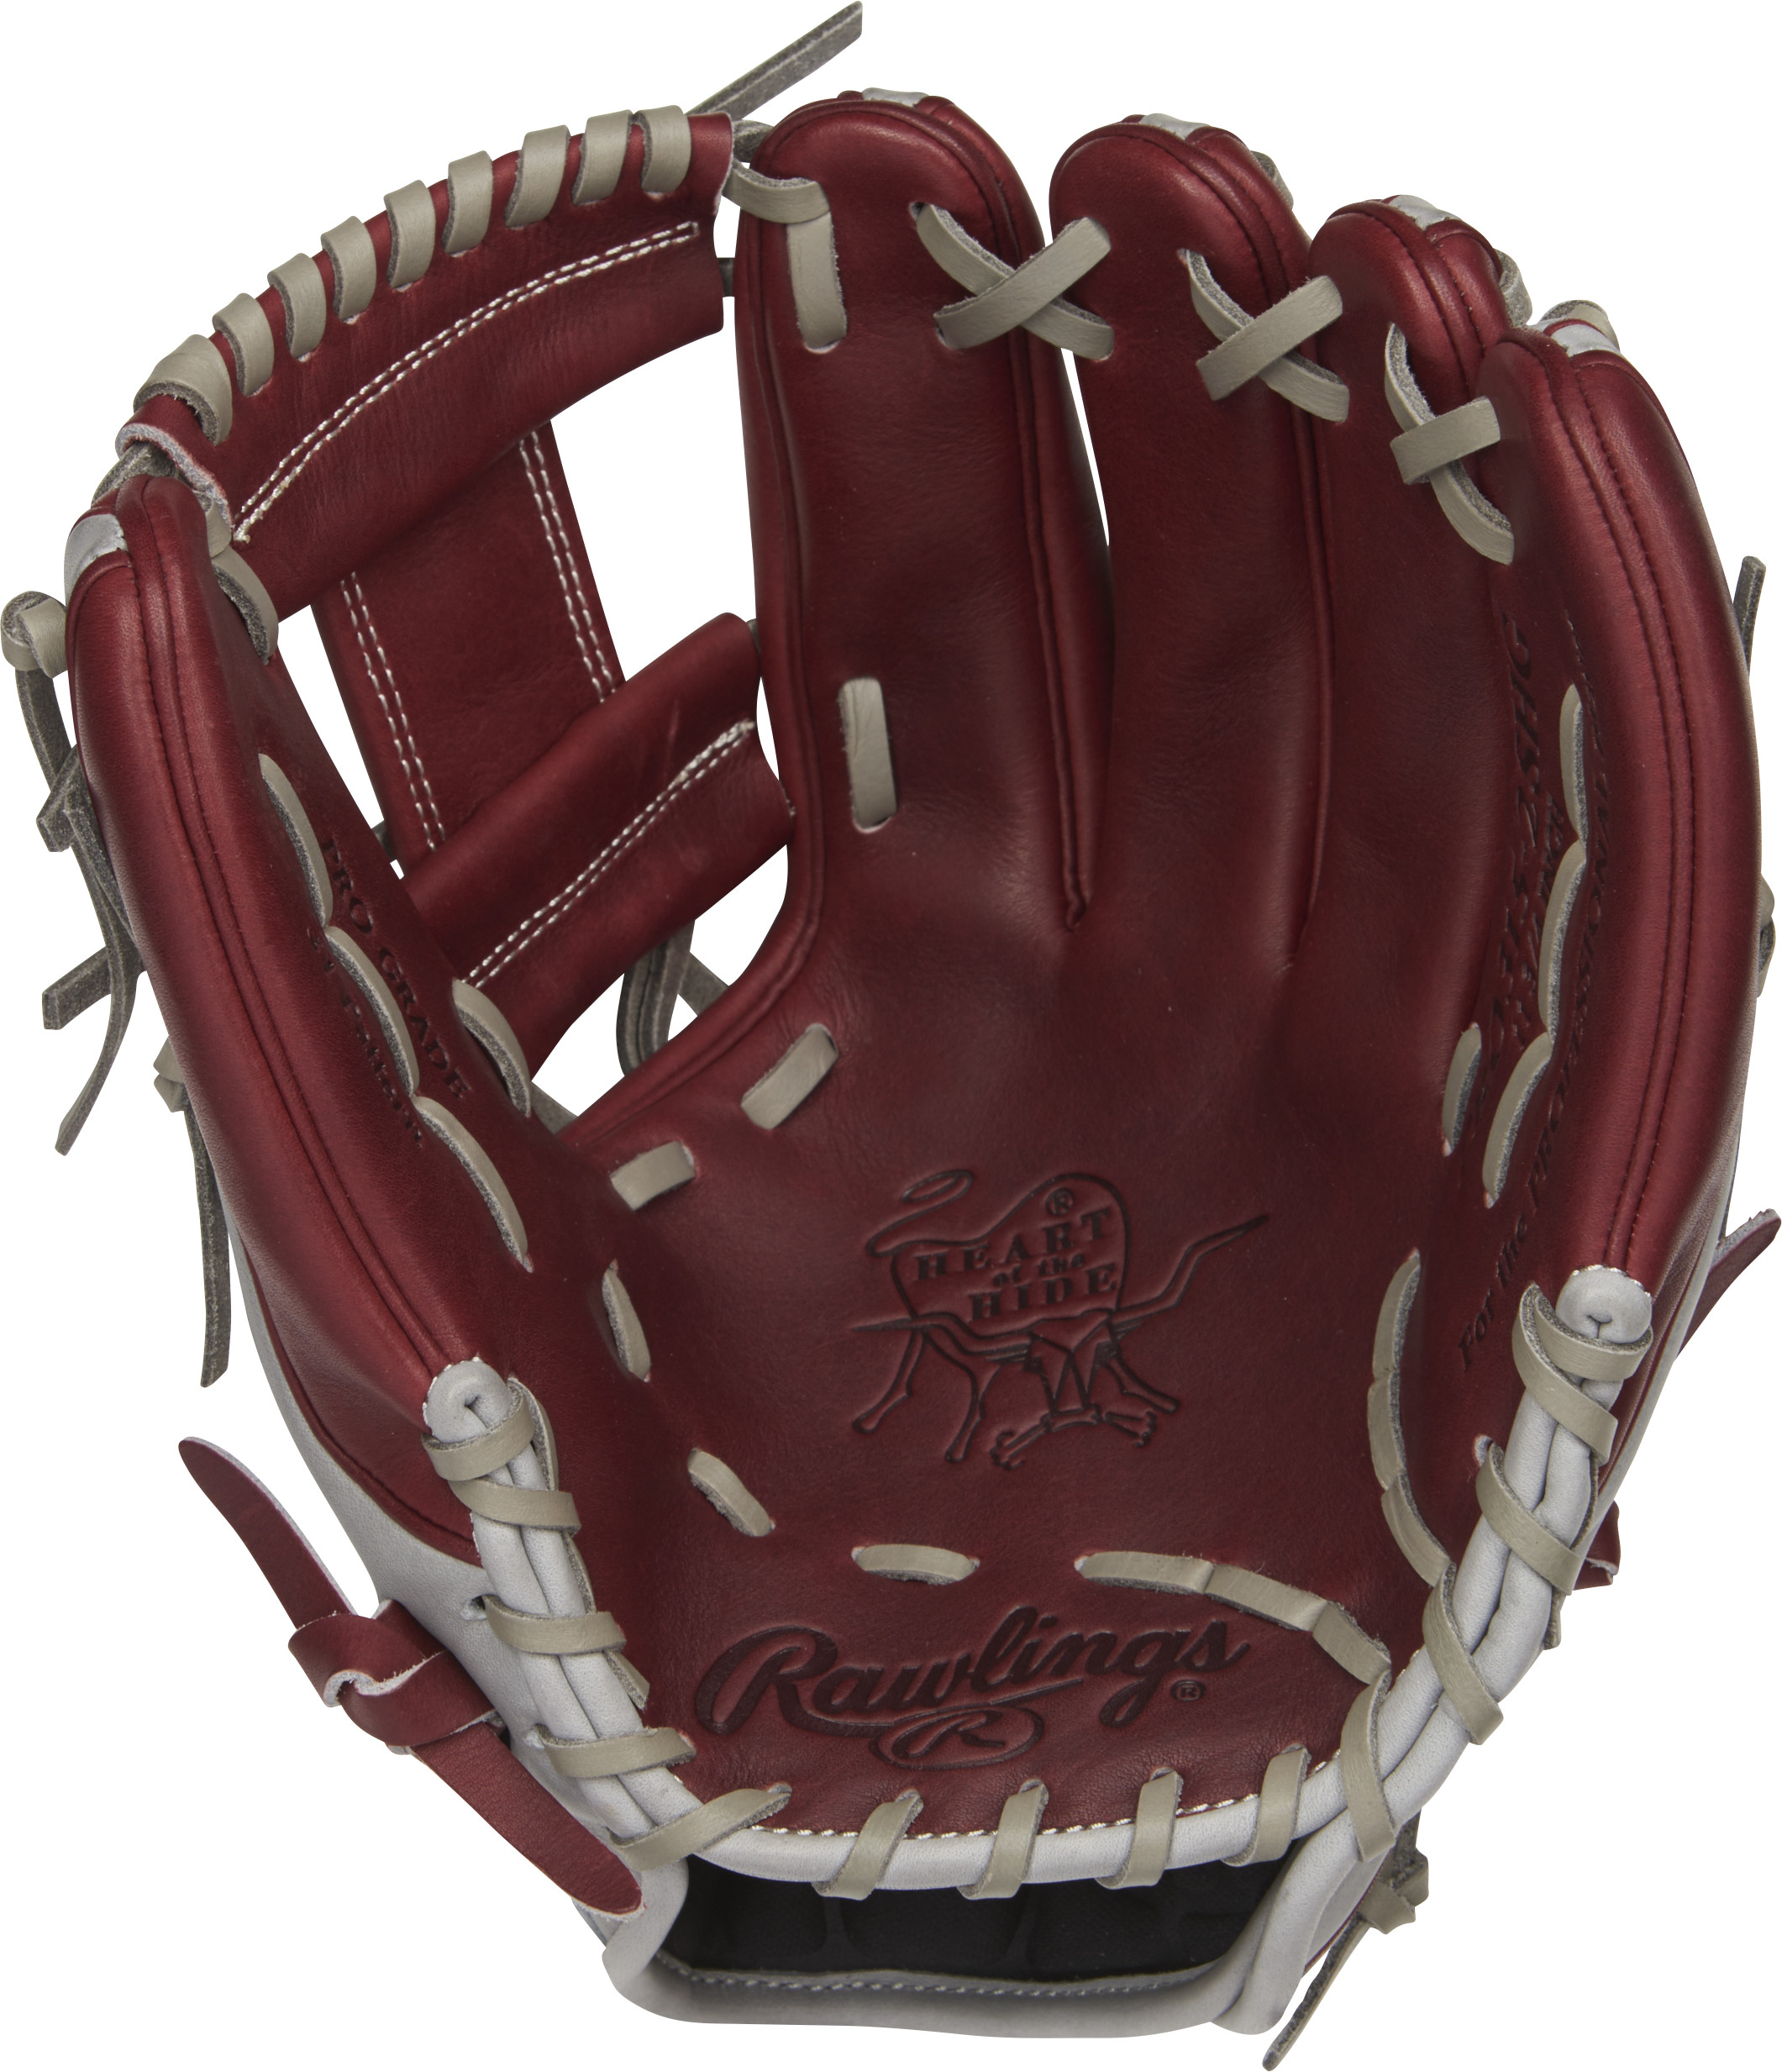 http://www.bestbatdeals.com/images/gloves/rawlings/PRO315-2SHG-1.jpg